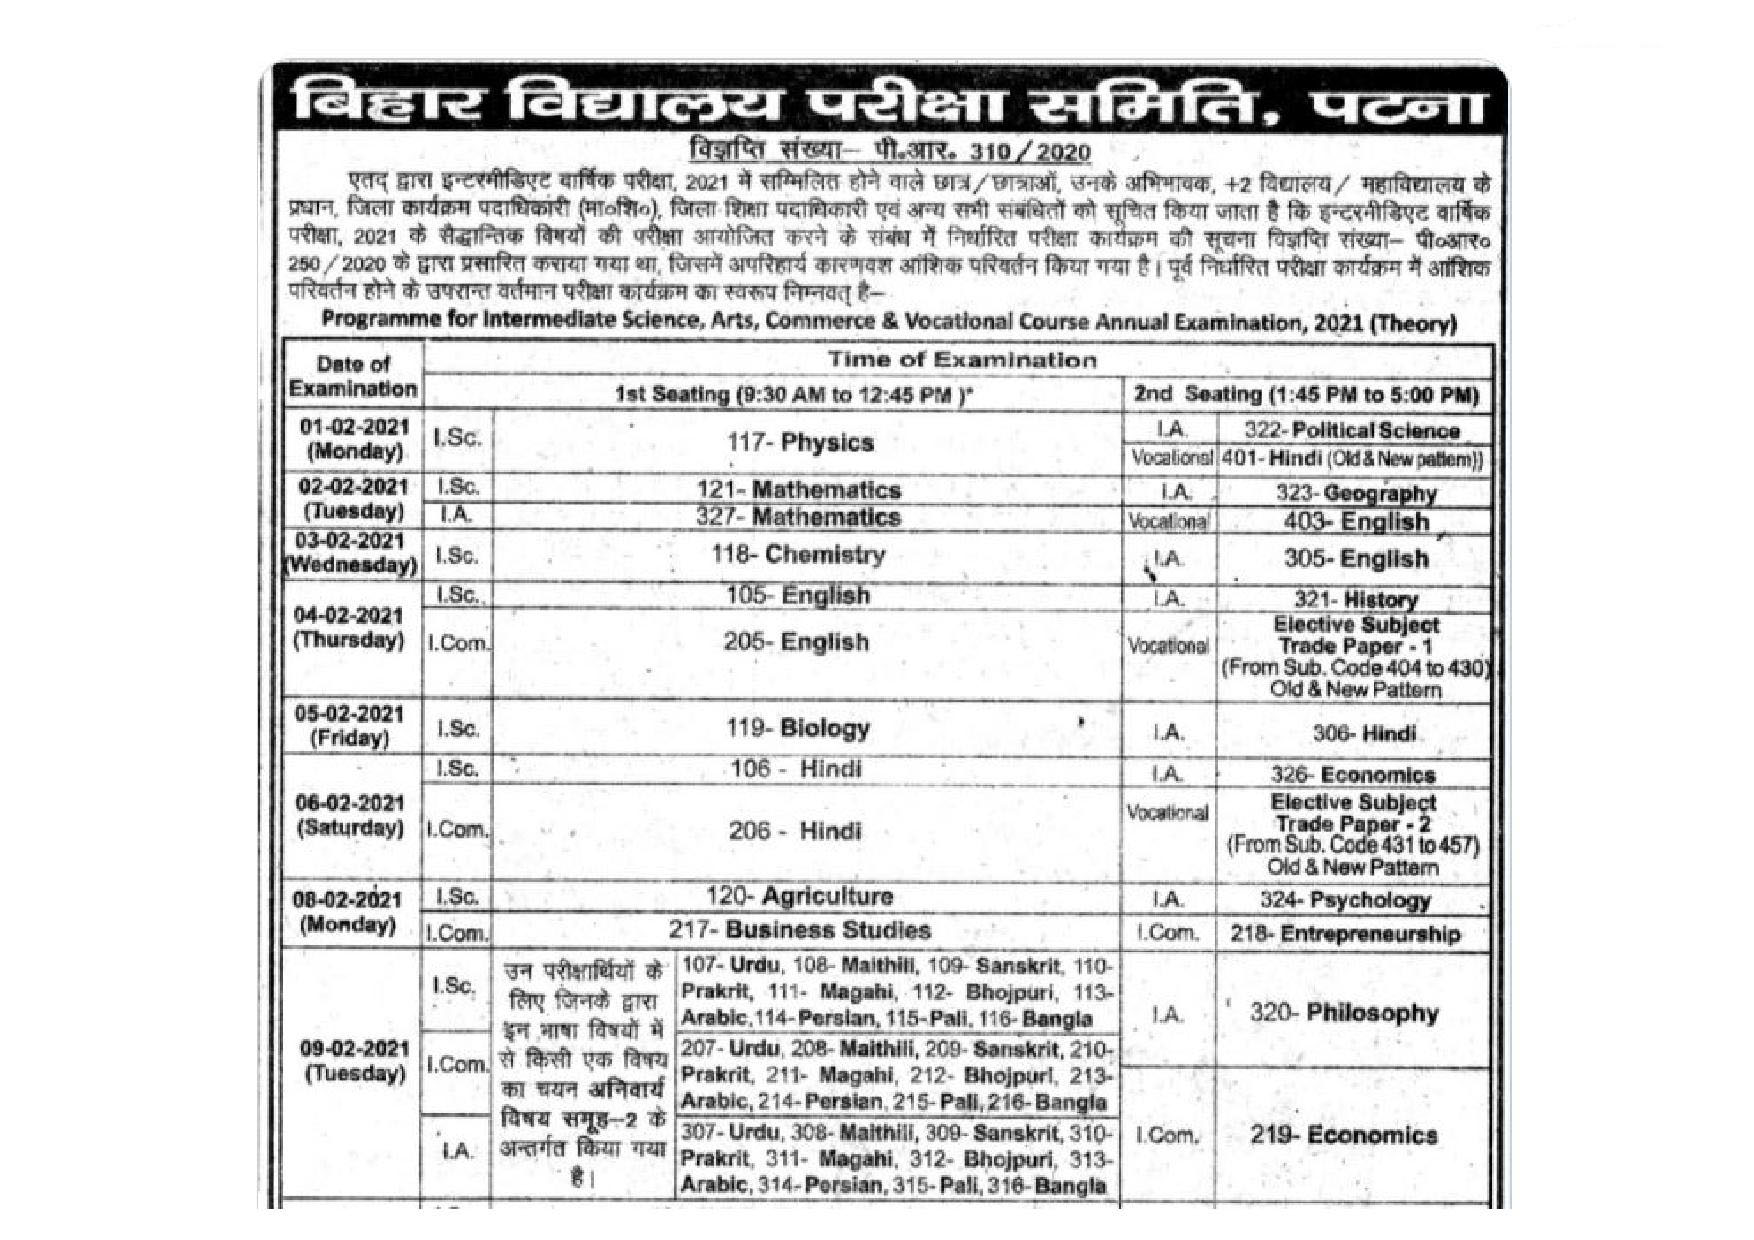 Bihar Board Intermediate Date Sheet 2021